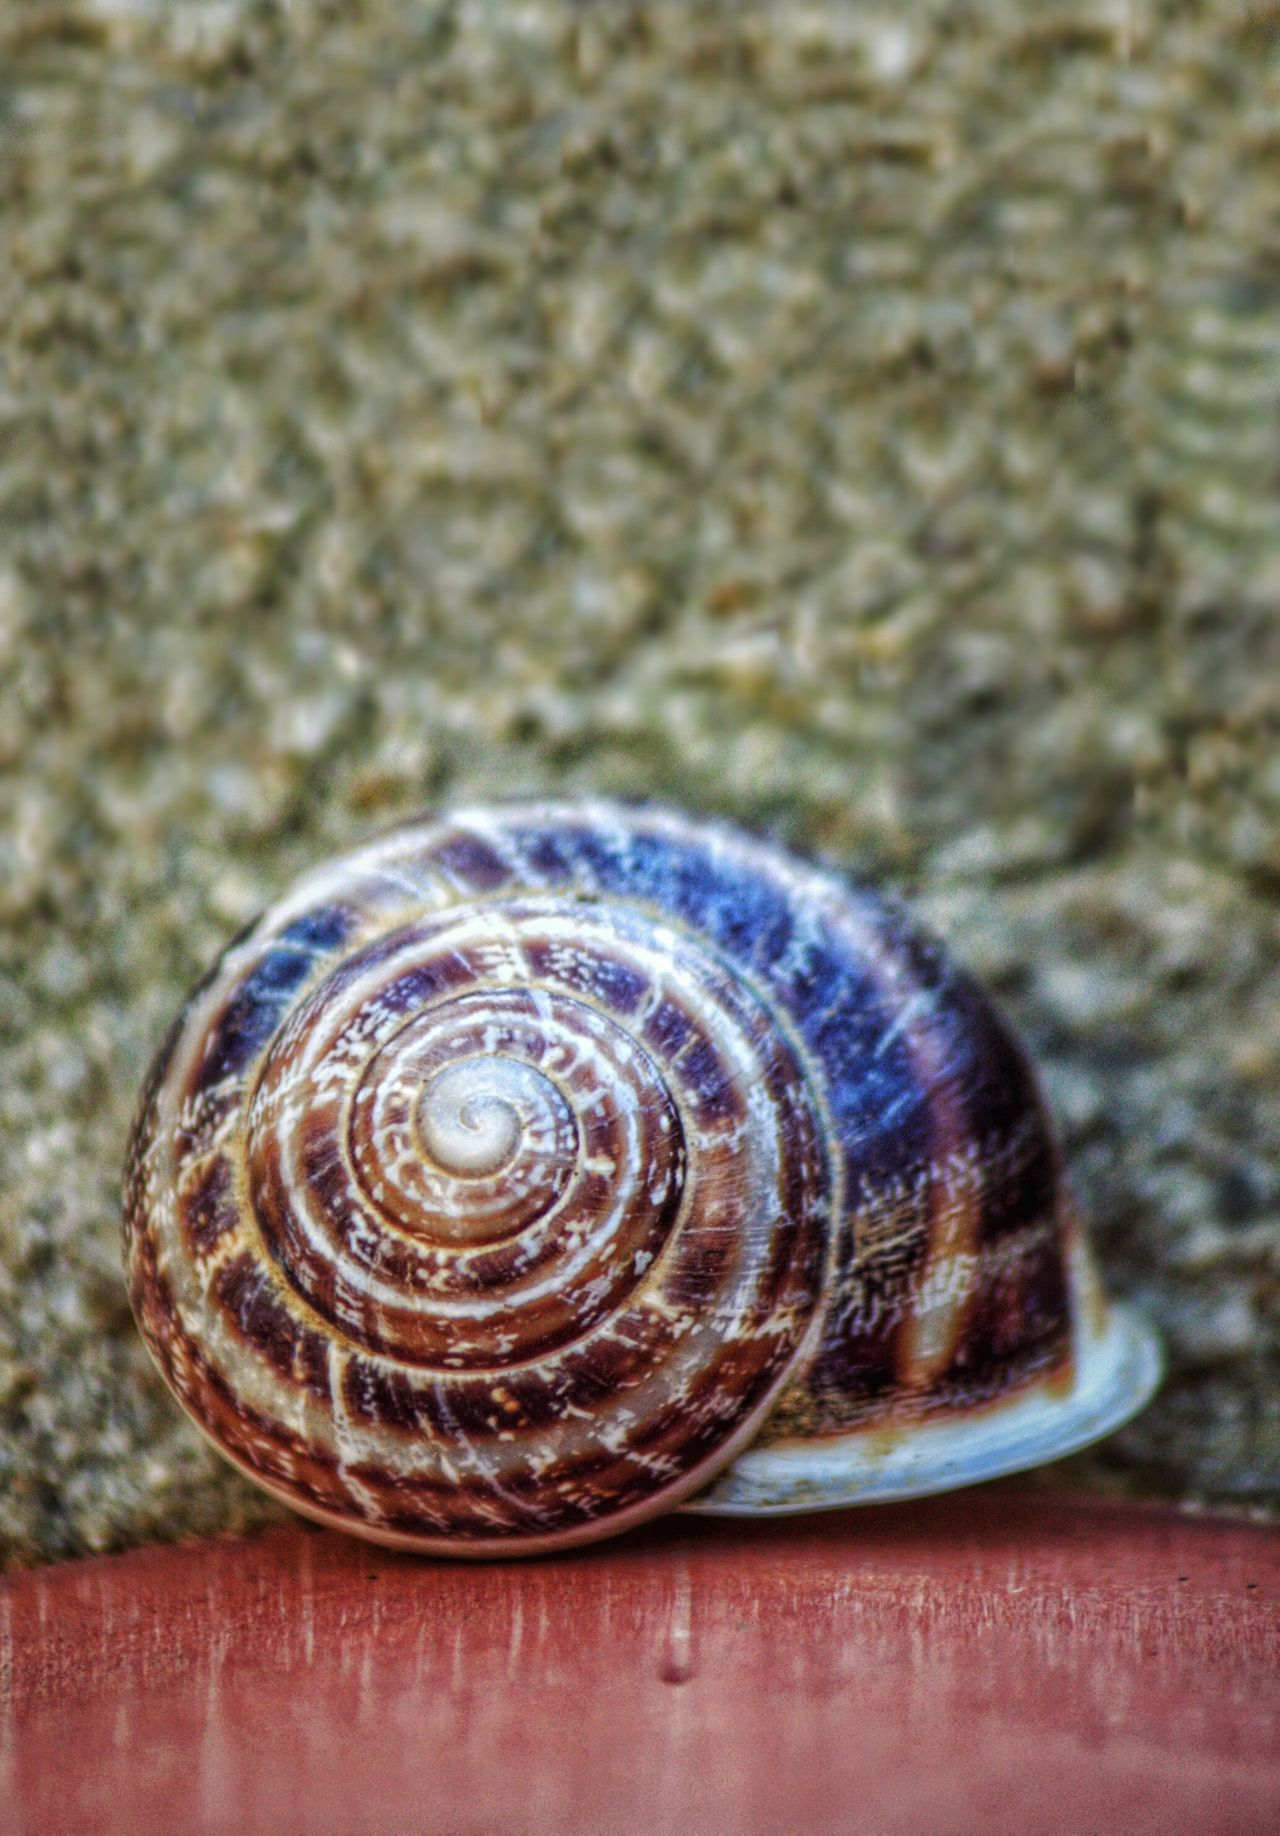 Shell Close-up Gastropod Snail Snailshell Snail Shell Snail Collection Snail Photography Snails Snail🐌 Snail Shell Close Up Snail Shells Snail Shell Closeup Close Up Shell Spiral Spirals Spiral Shell Spiral Shape Snail ❤ Empty Shell Empty Shells Shells Shell Collection Shell Photography Shell Photo